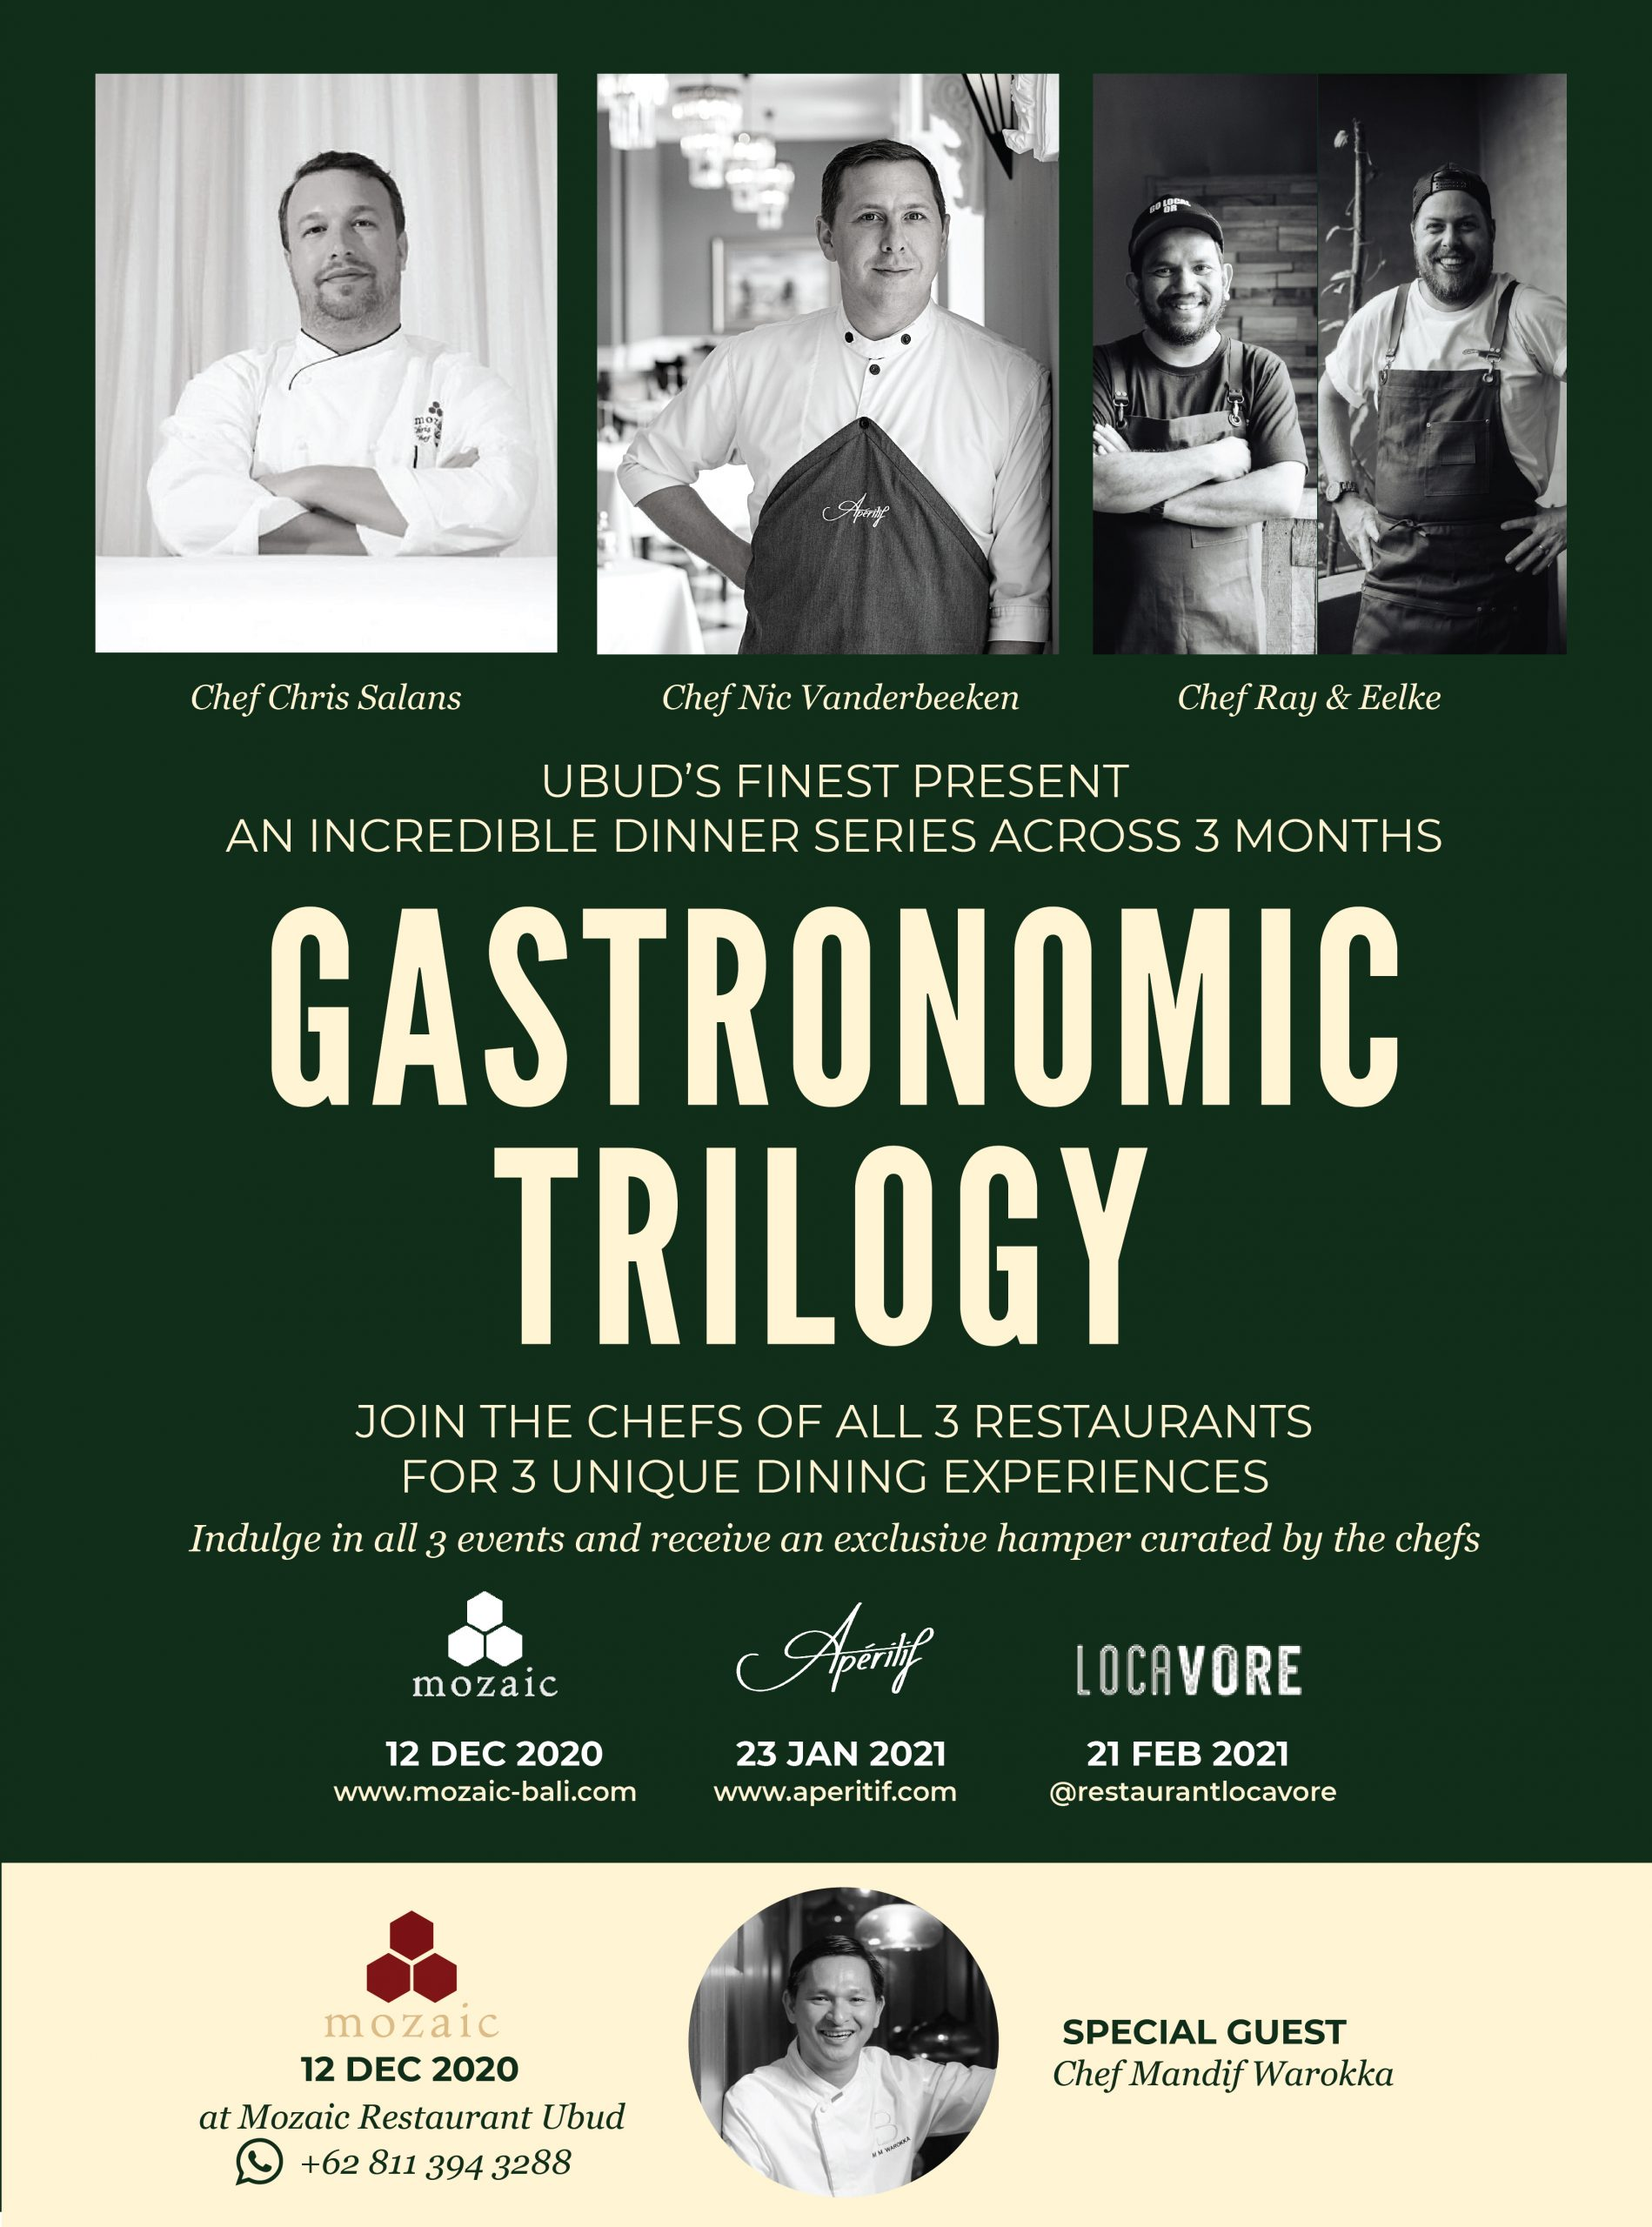 http://highend-traveller.com/a-gastronomic-trilogy/